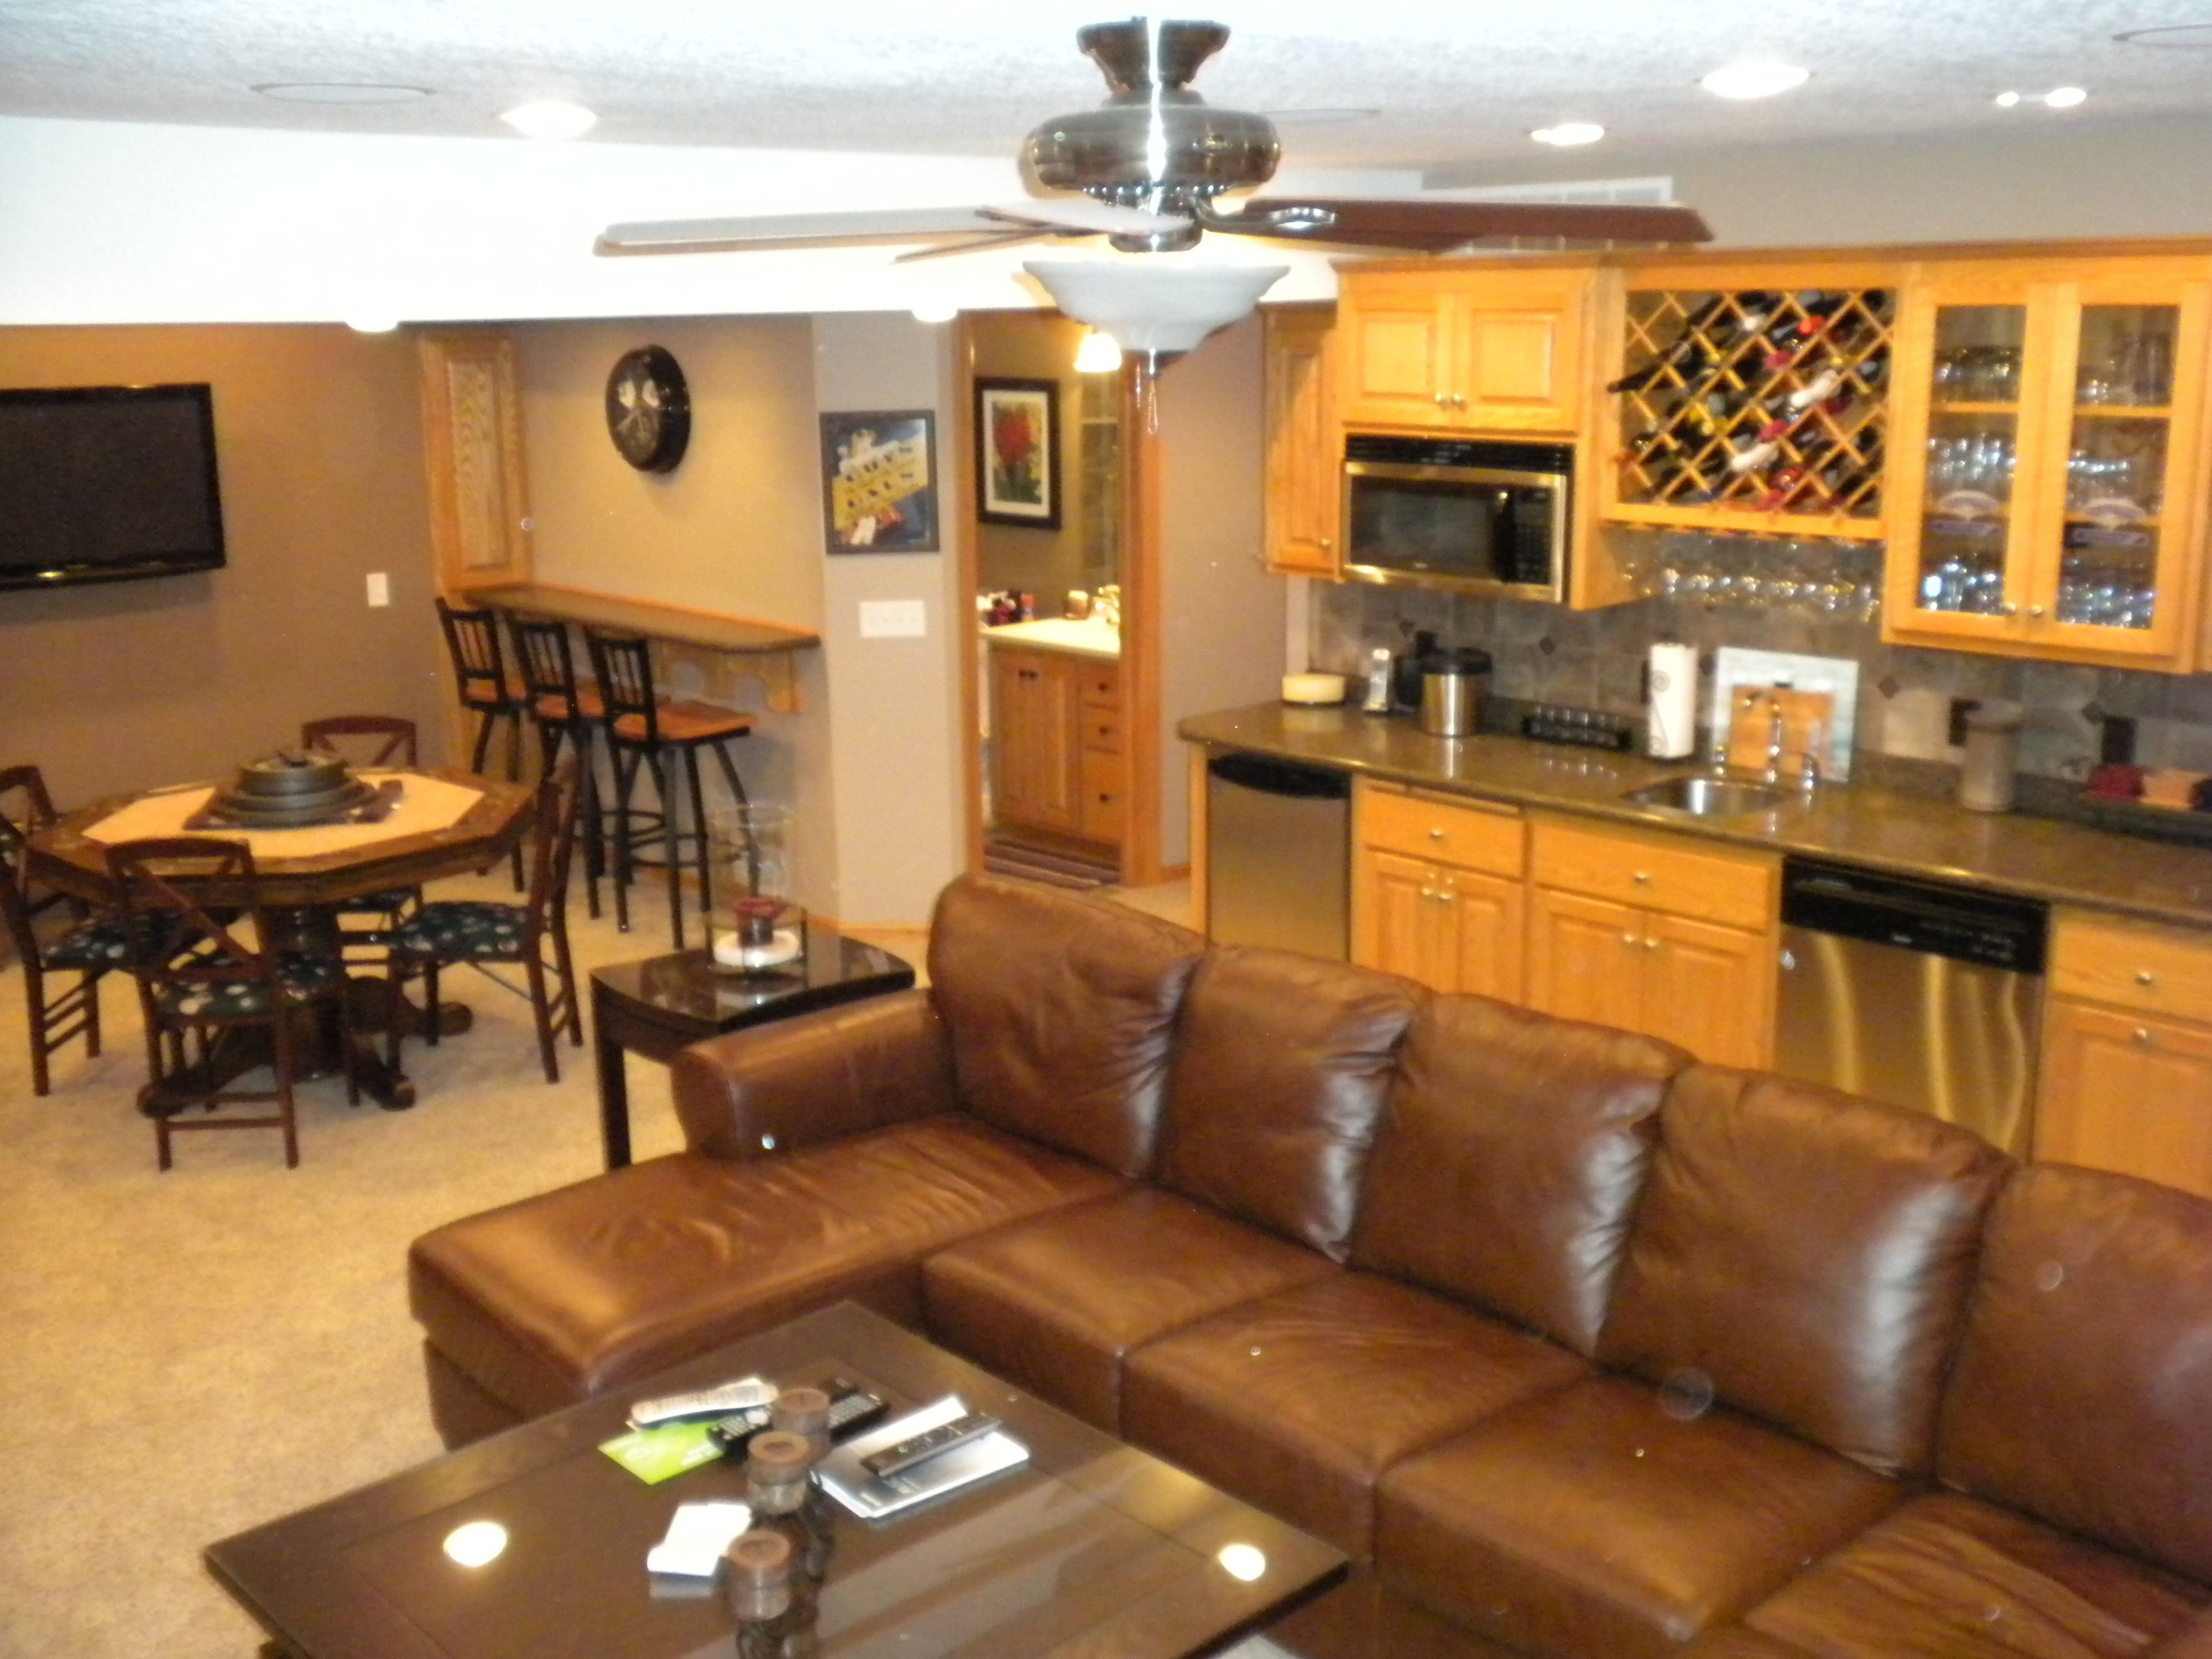 Basement Remodeling Milwaukee Decor basement-with-square-arches | dream home | pinterest